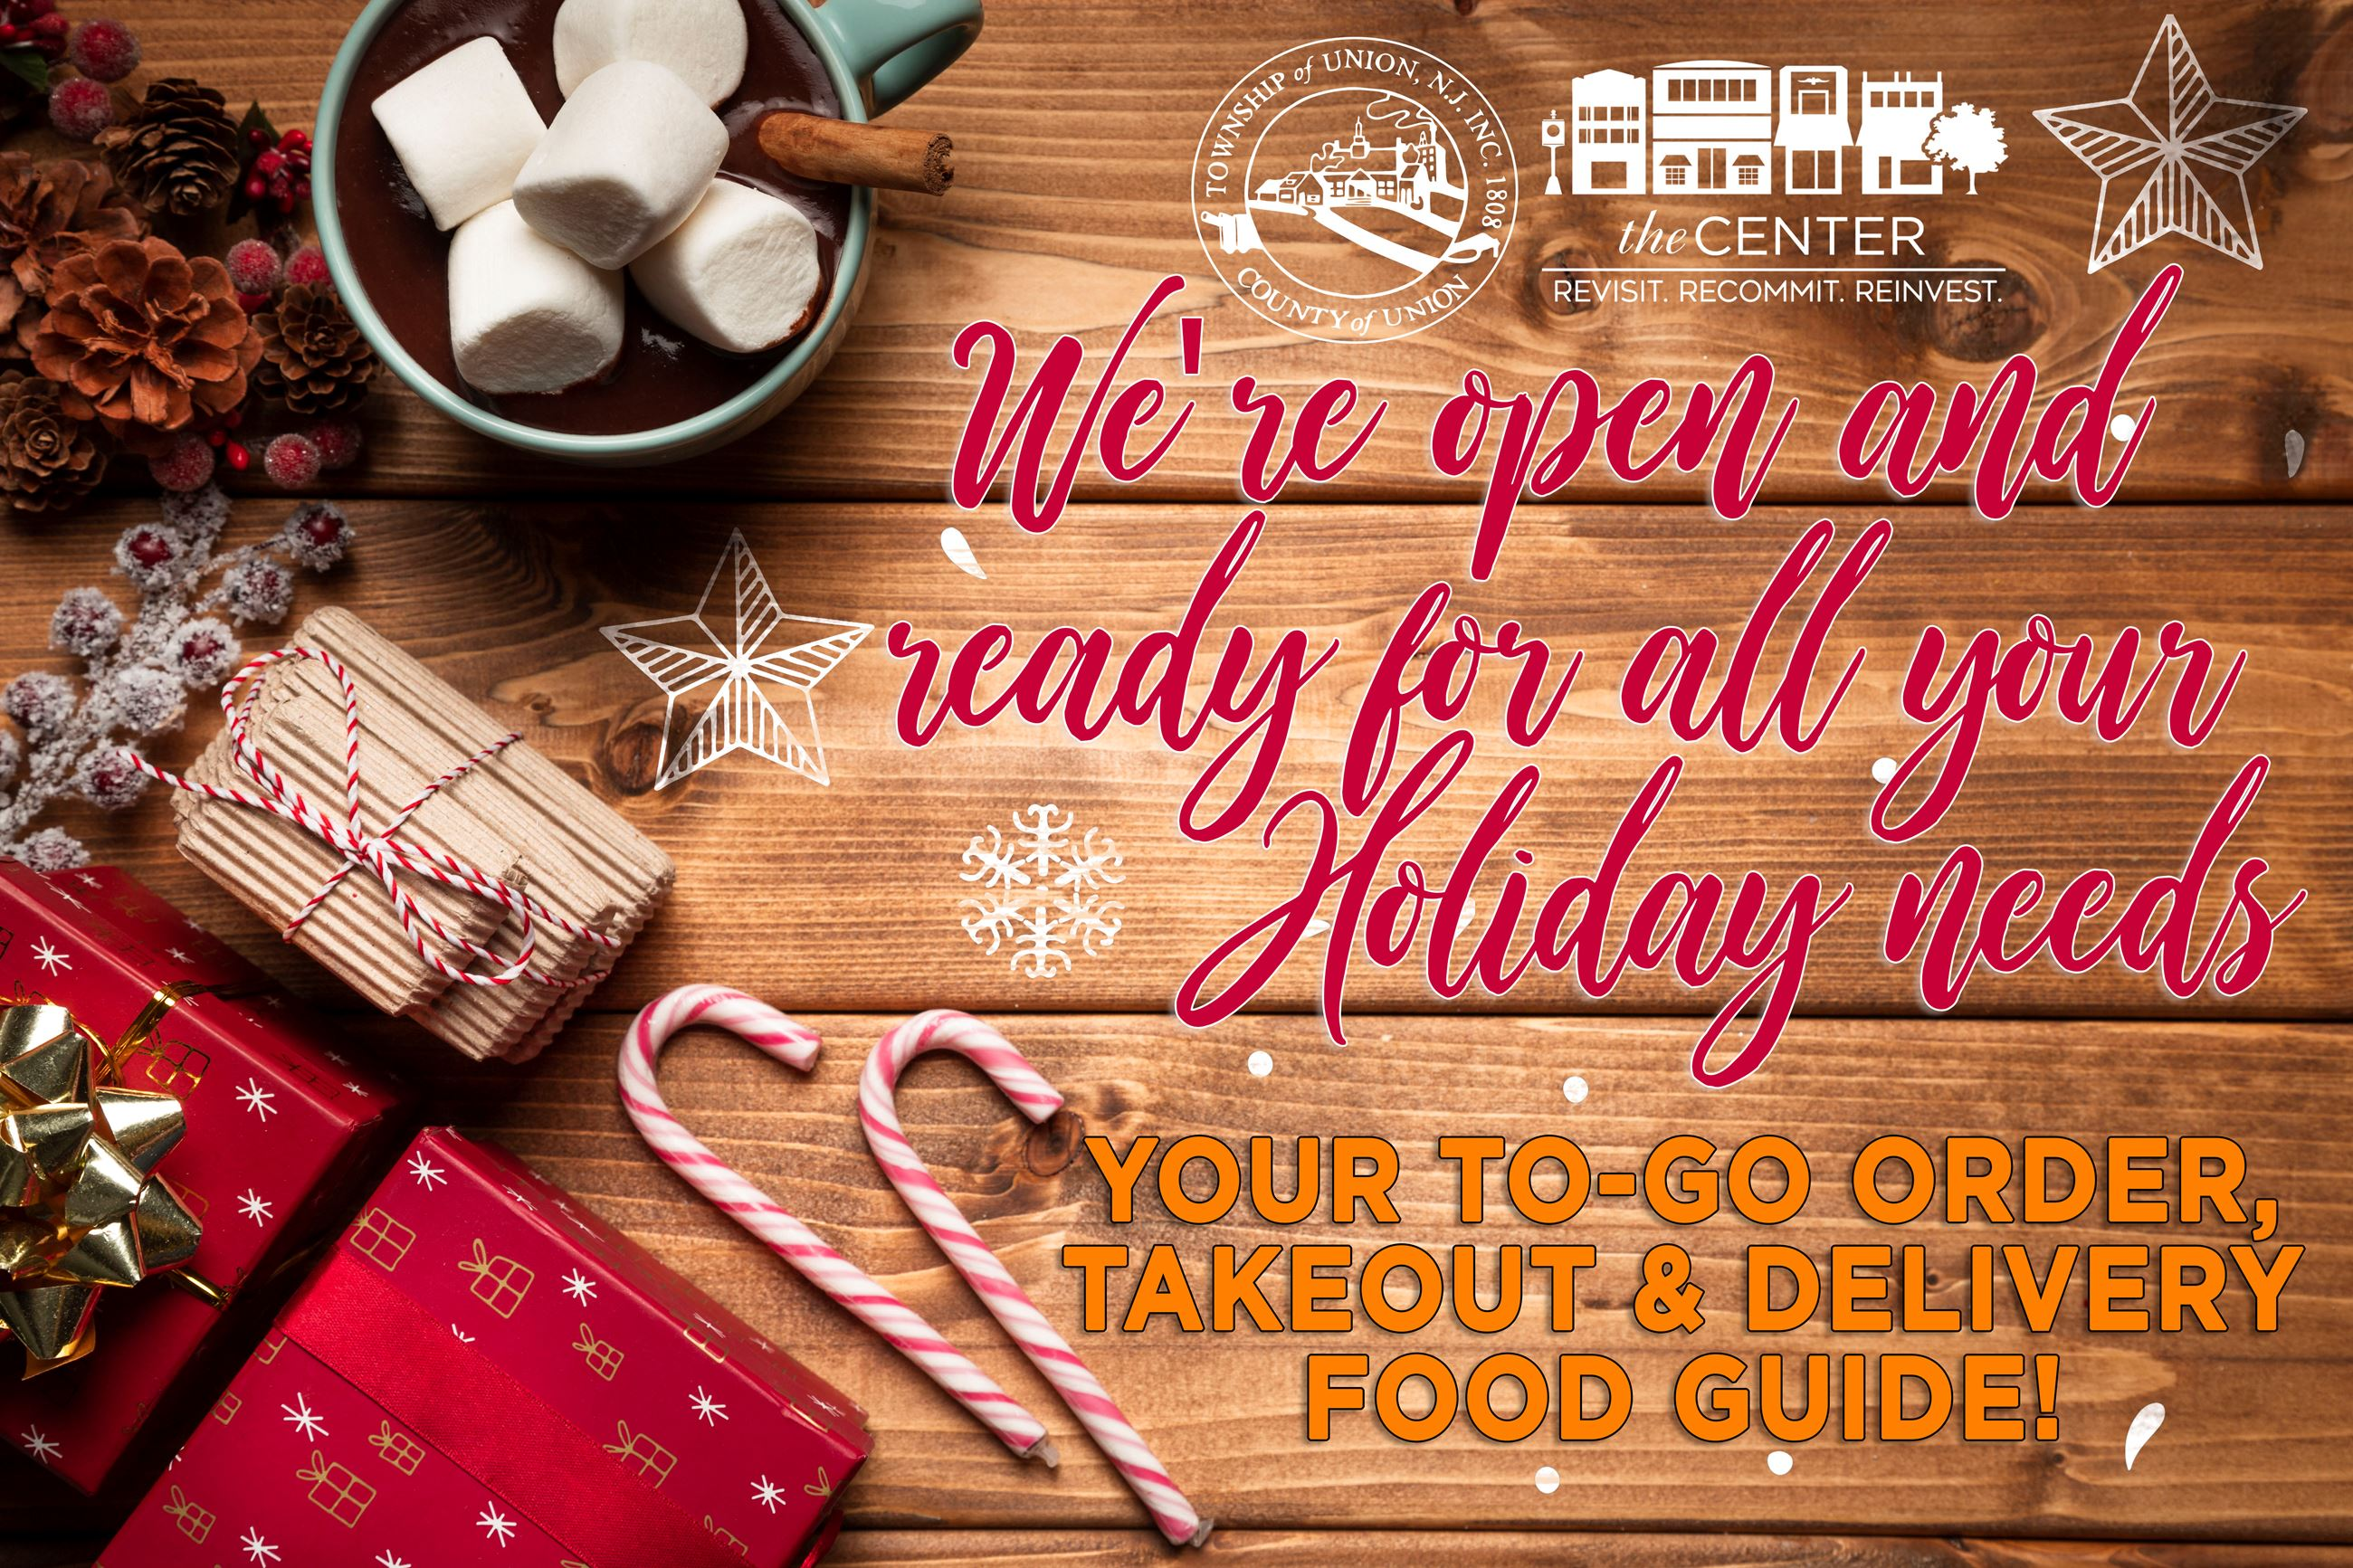 Holiday Food Guide Graphical Image